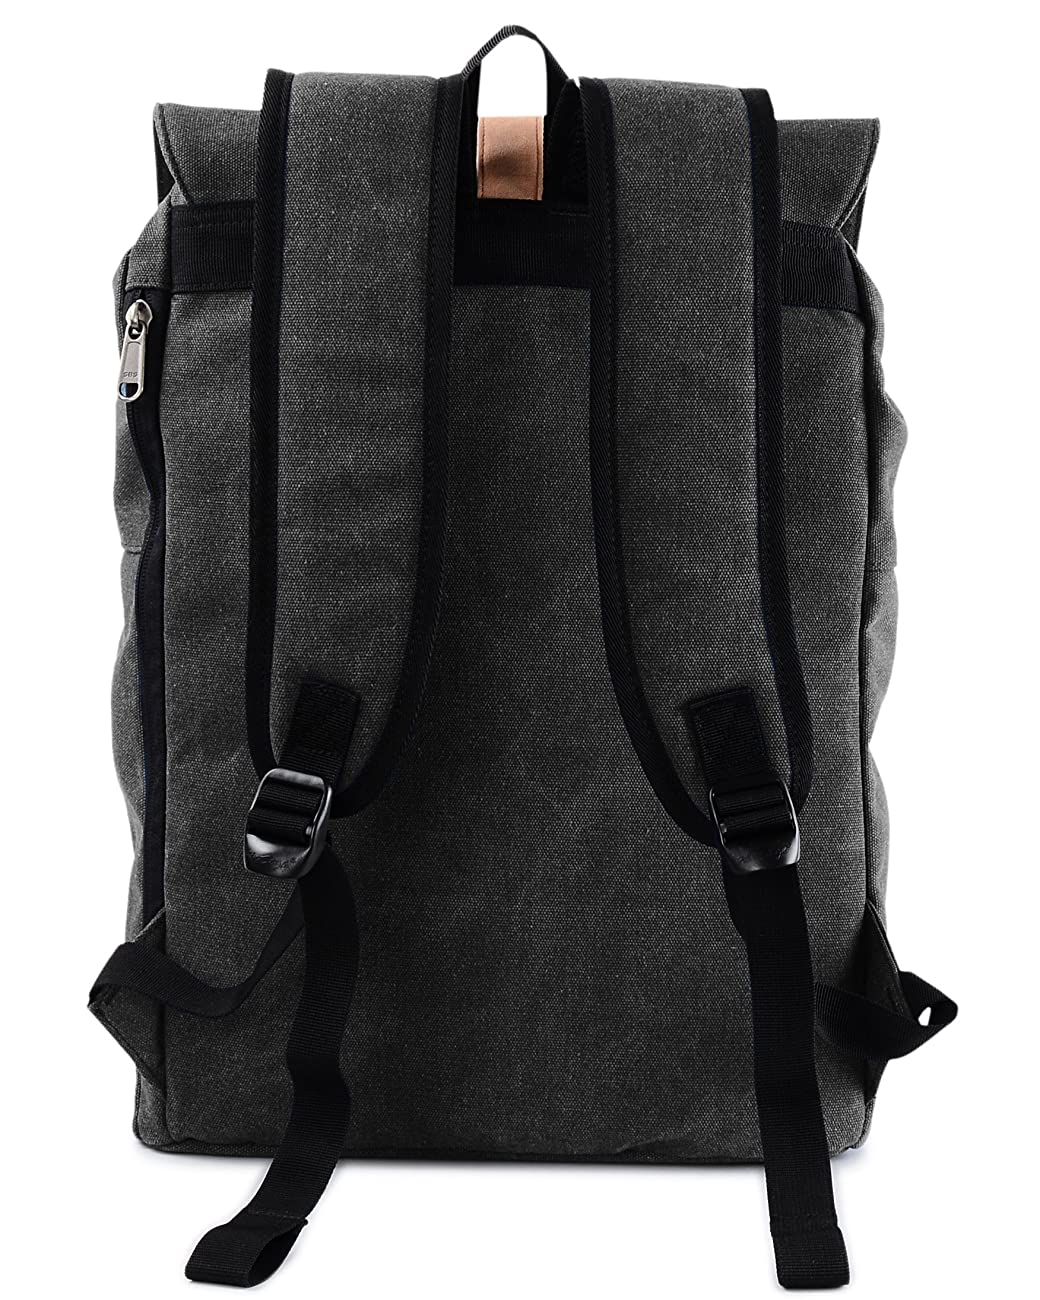 Vintage Canvas Backpack - HotStyle Waterpoof Travel Rucksack Fits 15.6 inch Laptop - Black 1